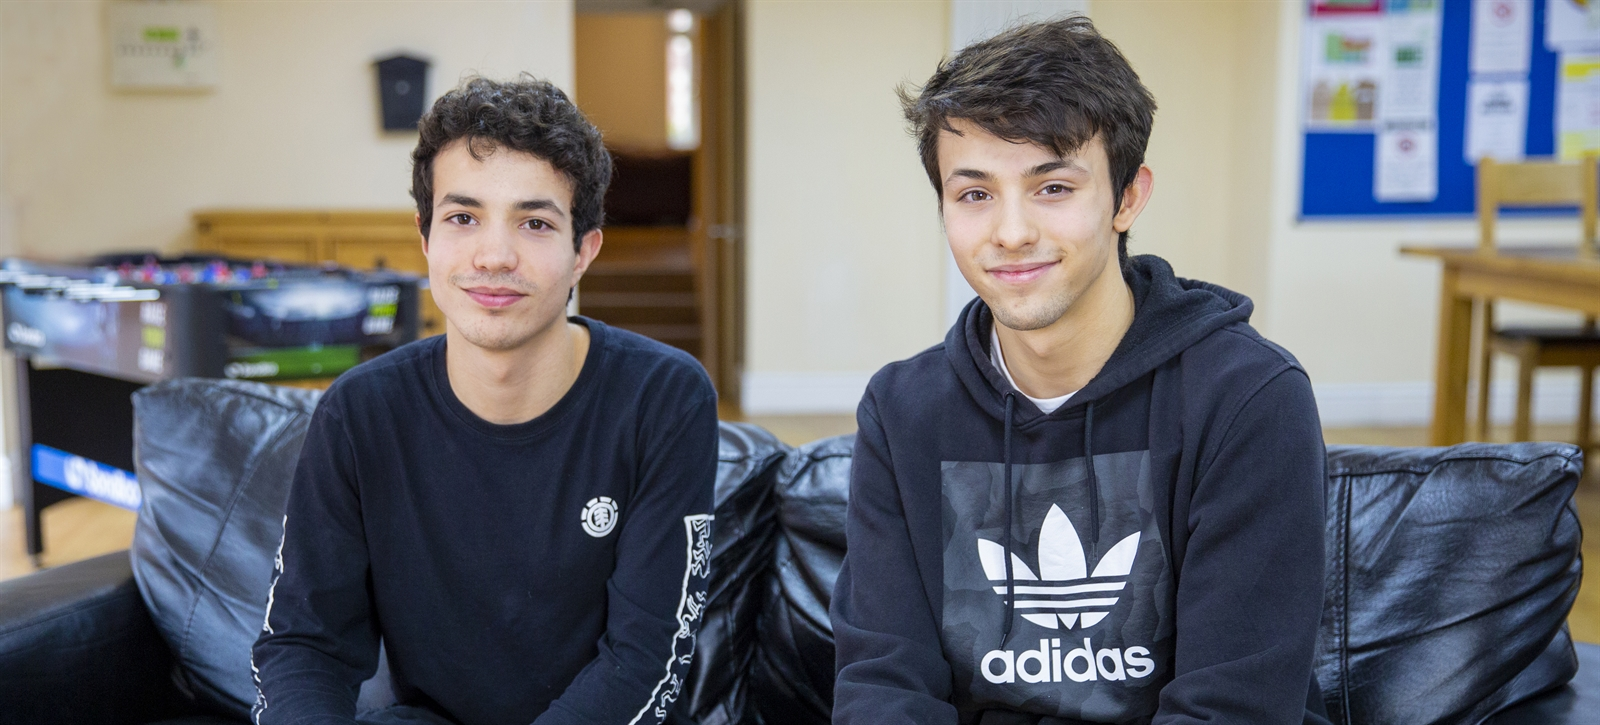 Twins receive top university offers to study Medicine